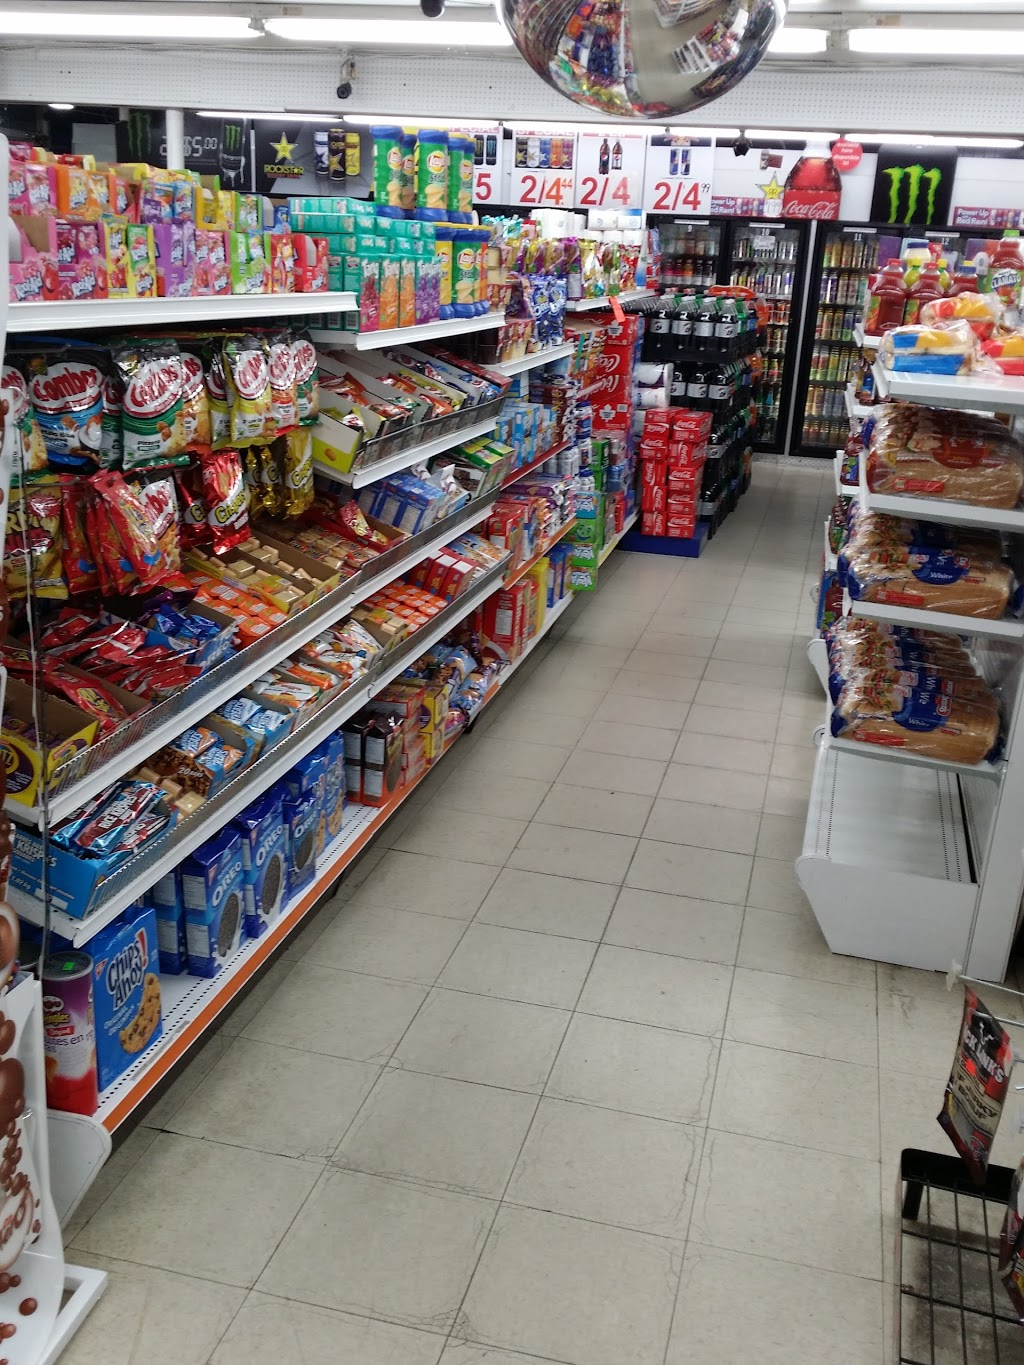 Stop And Shop | store | 309 Wentworth St W, Oshawa, ON L1J 1M9, Canada | 9057289092 OR +1 905-728-9092